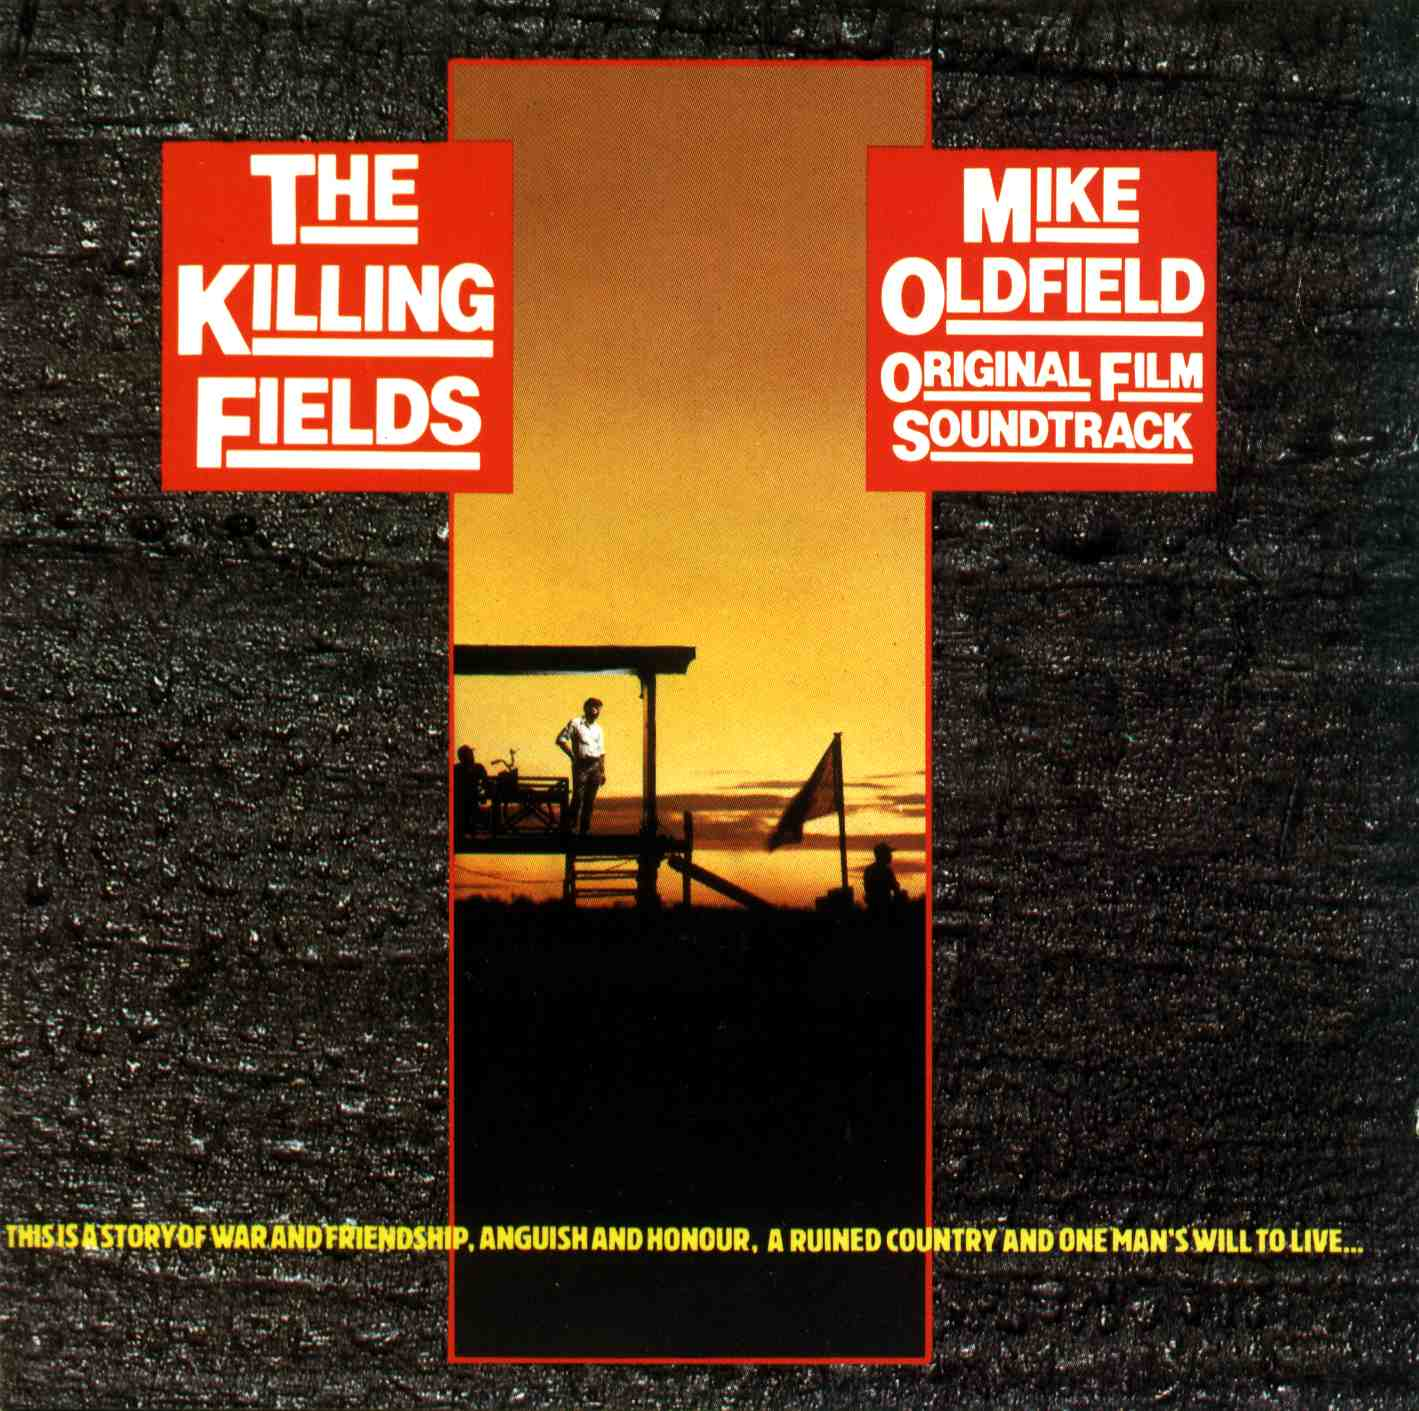 mike oldfield shadow on the wall